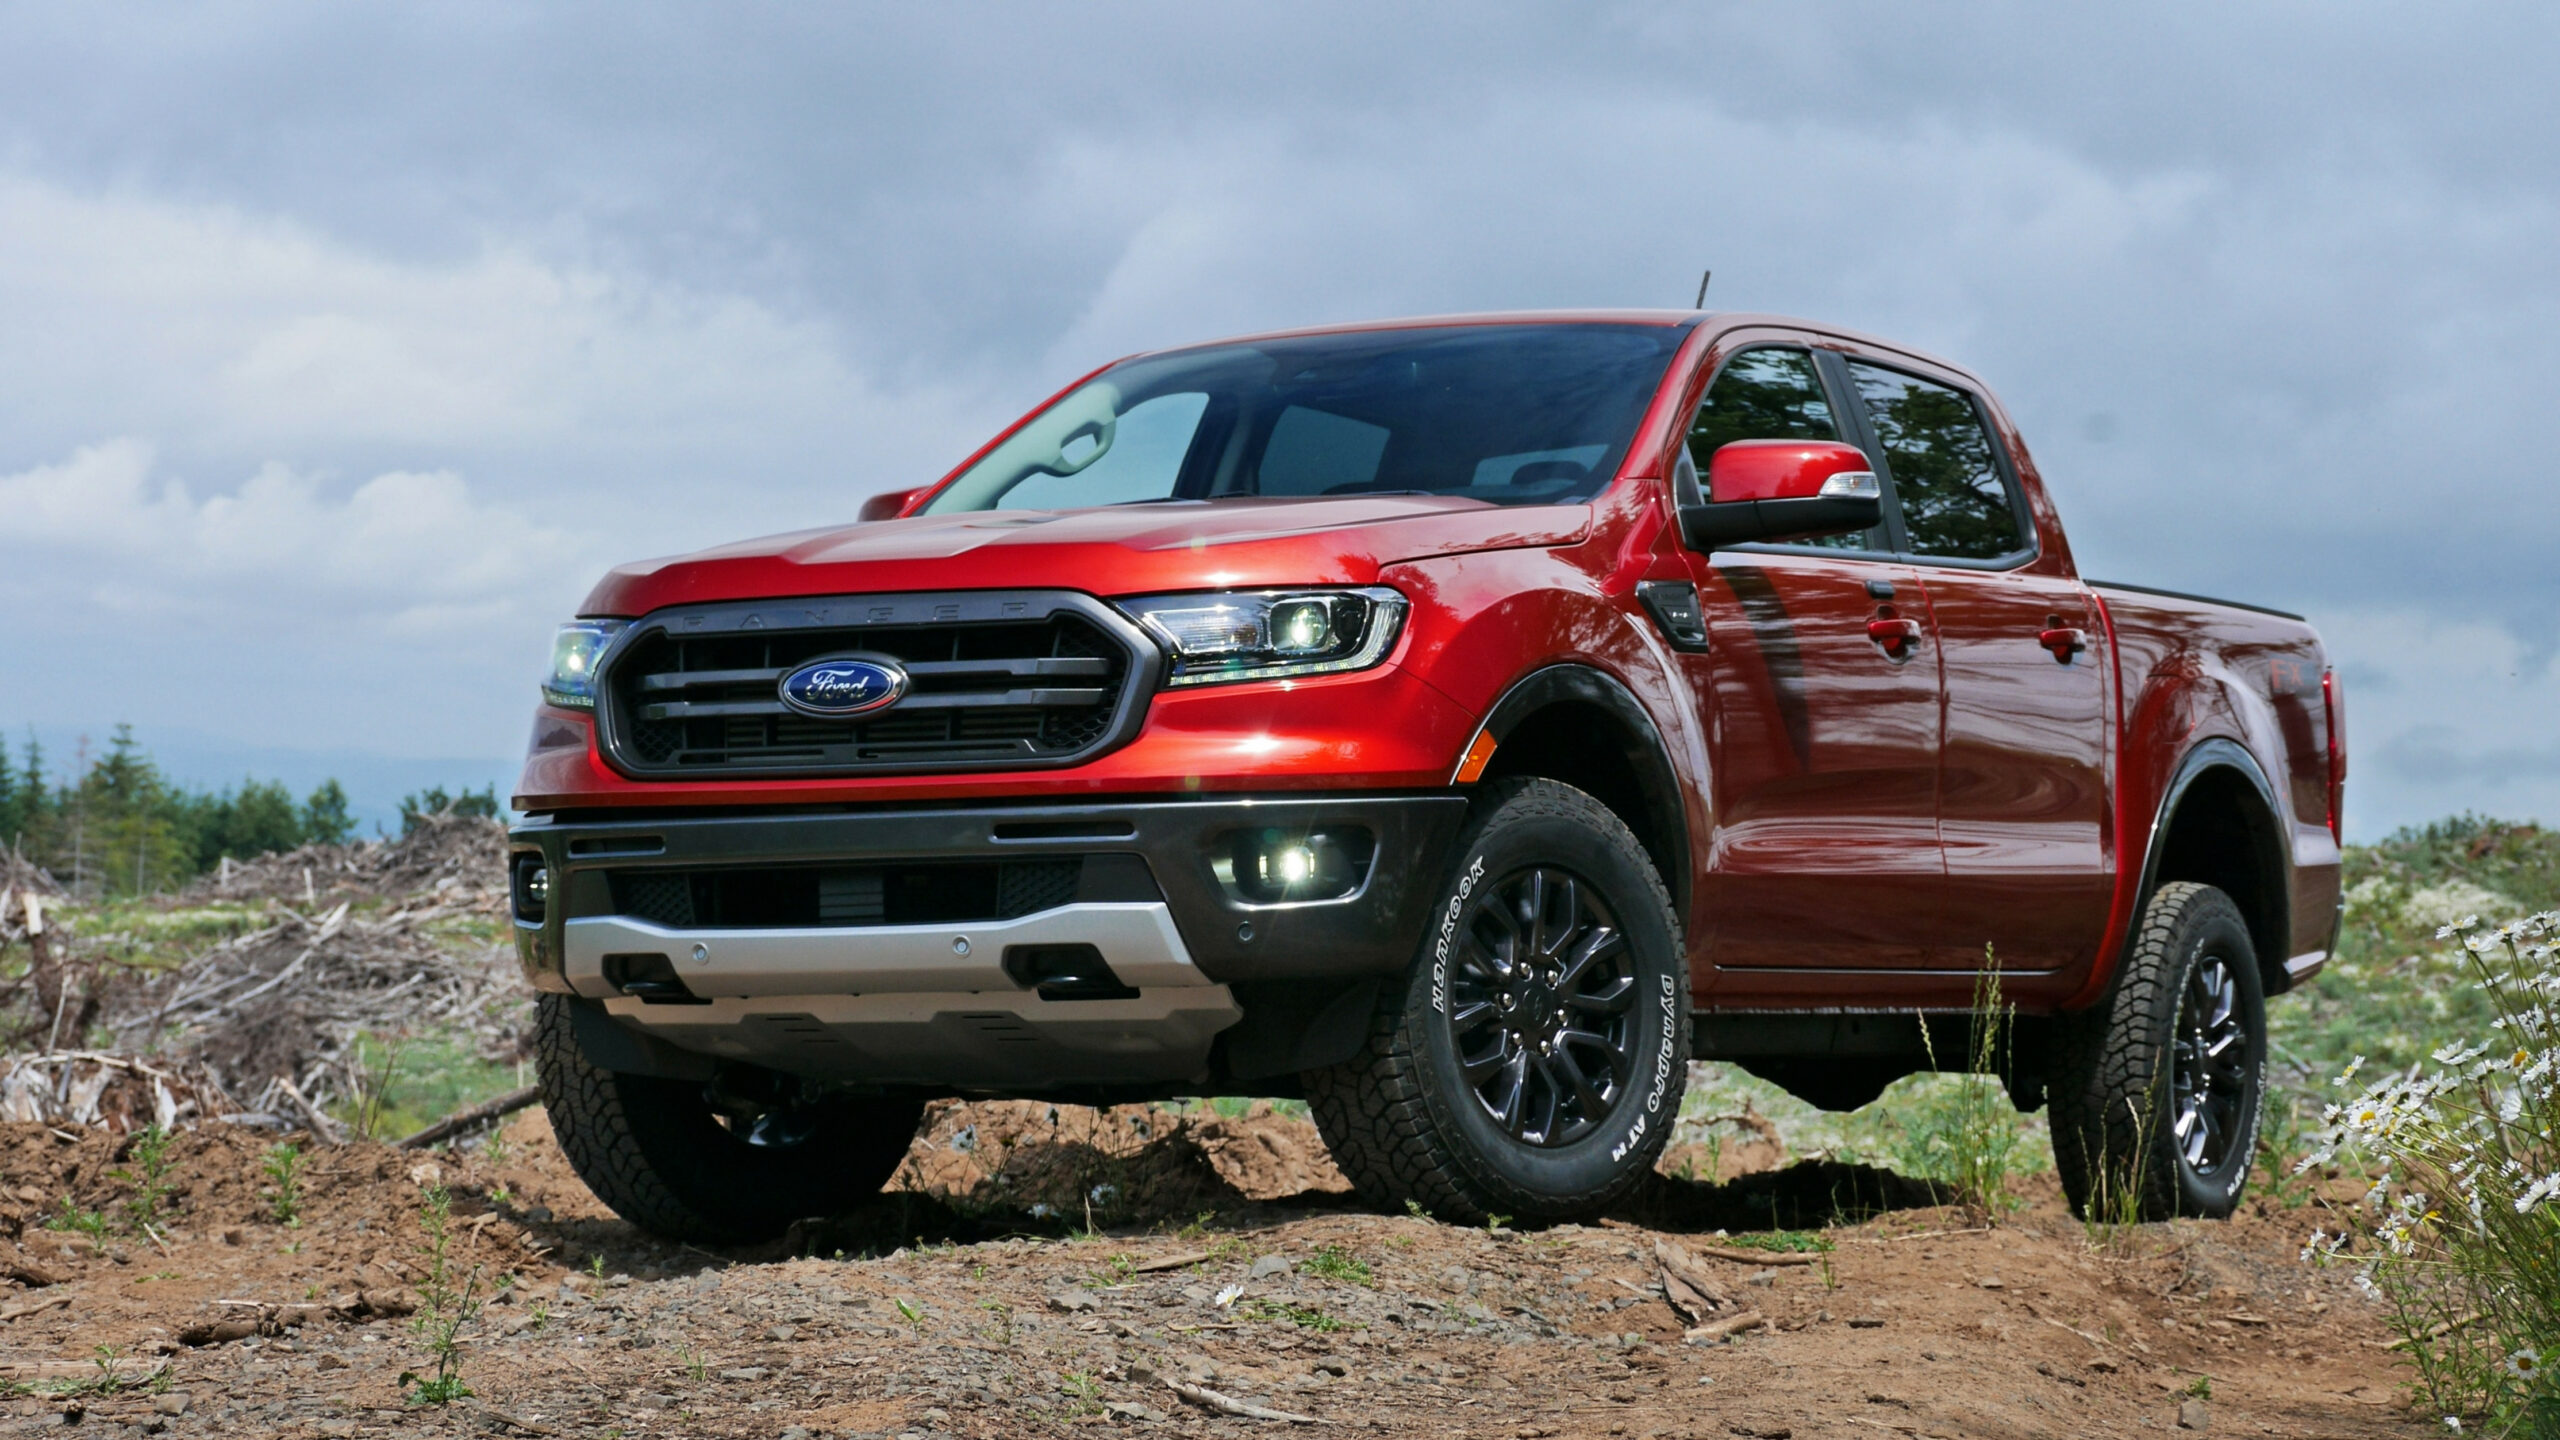 7 Ford Ranger Lariat SuperCrew Review | Interior space, ride ..